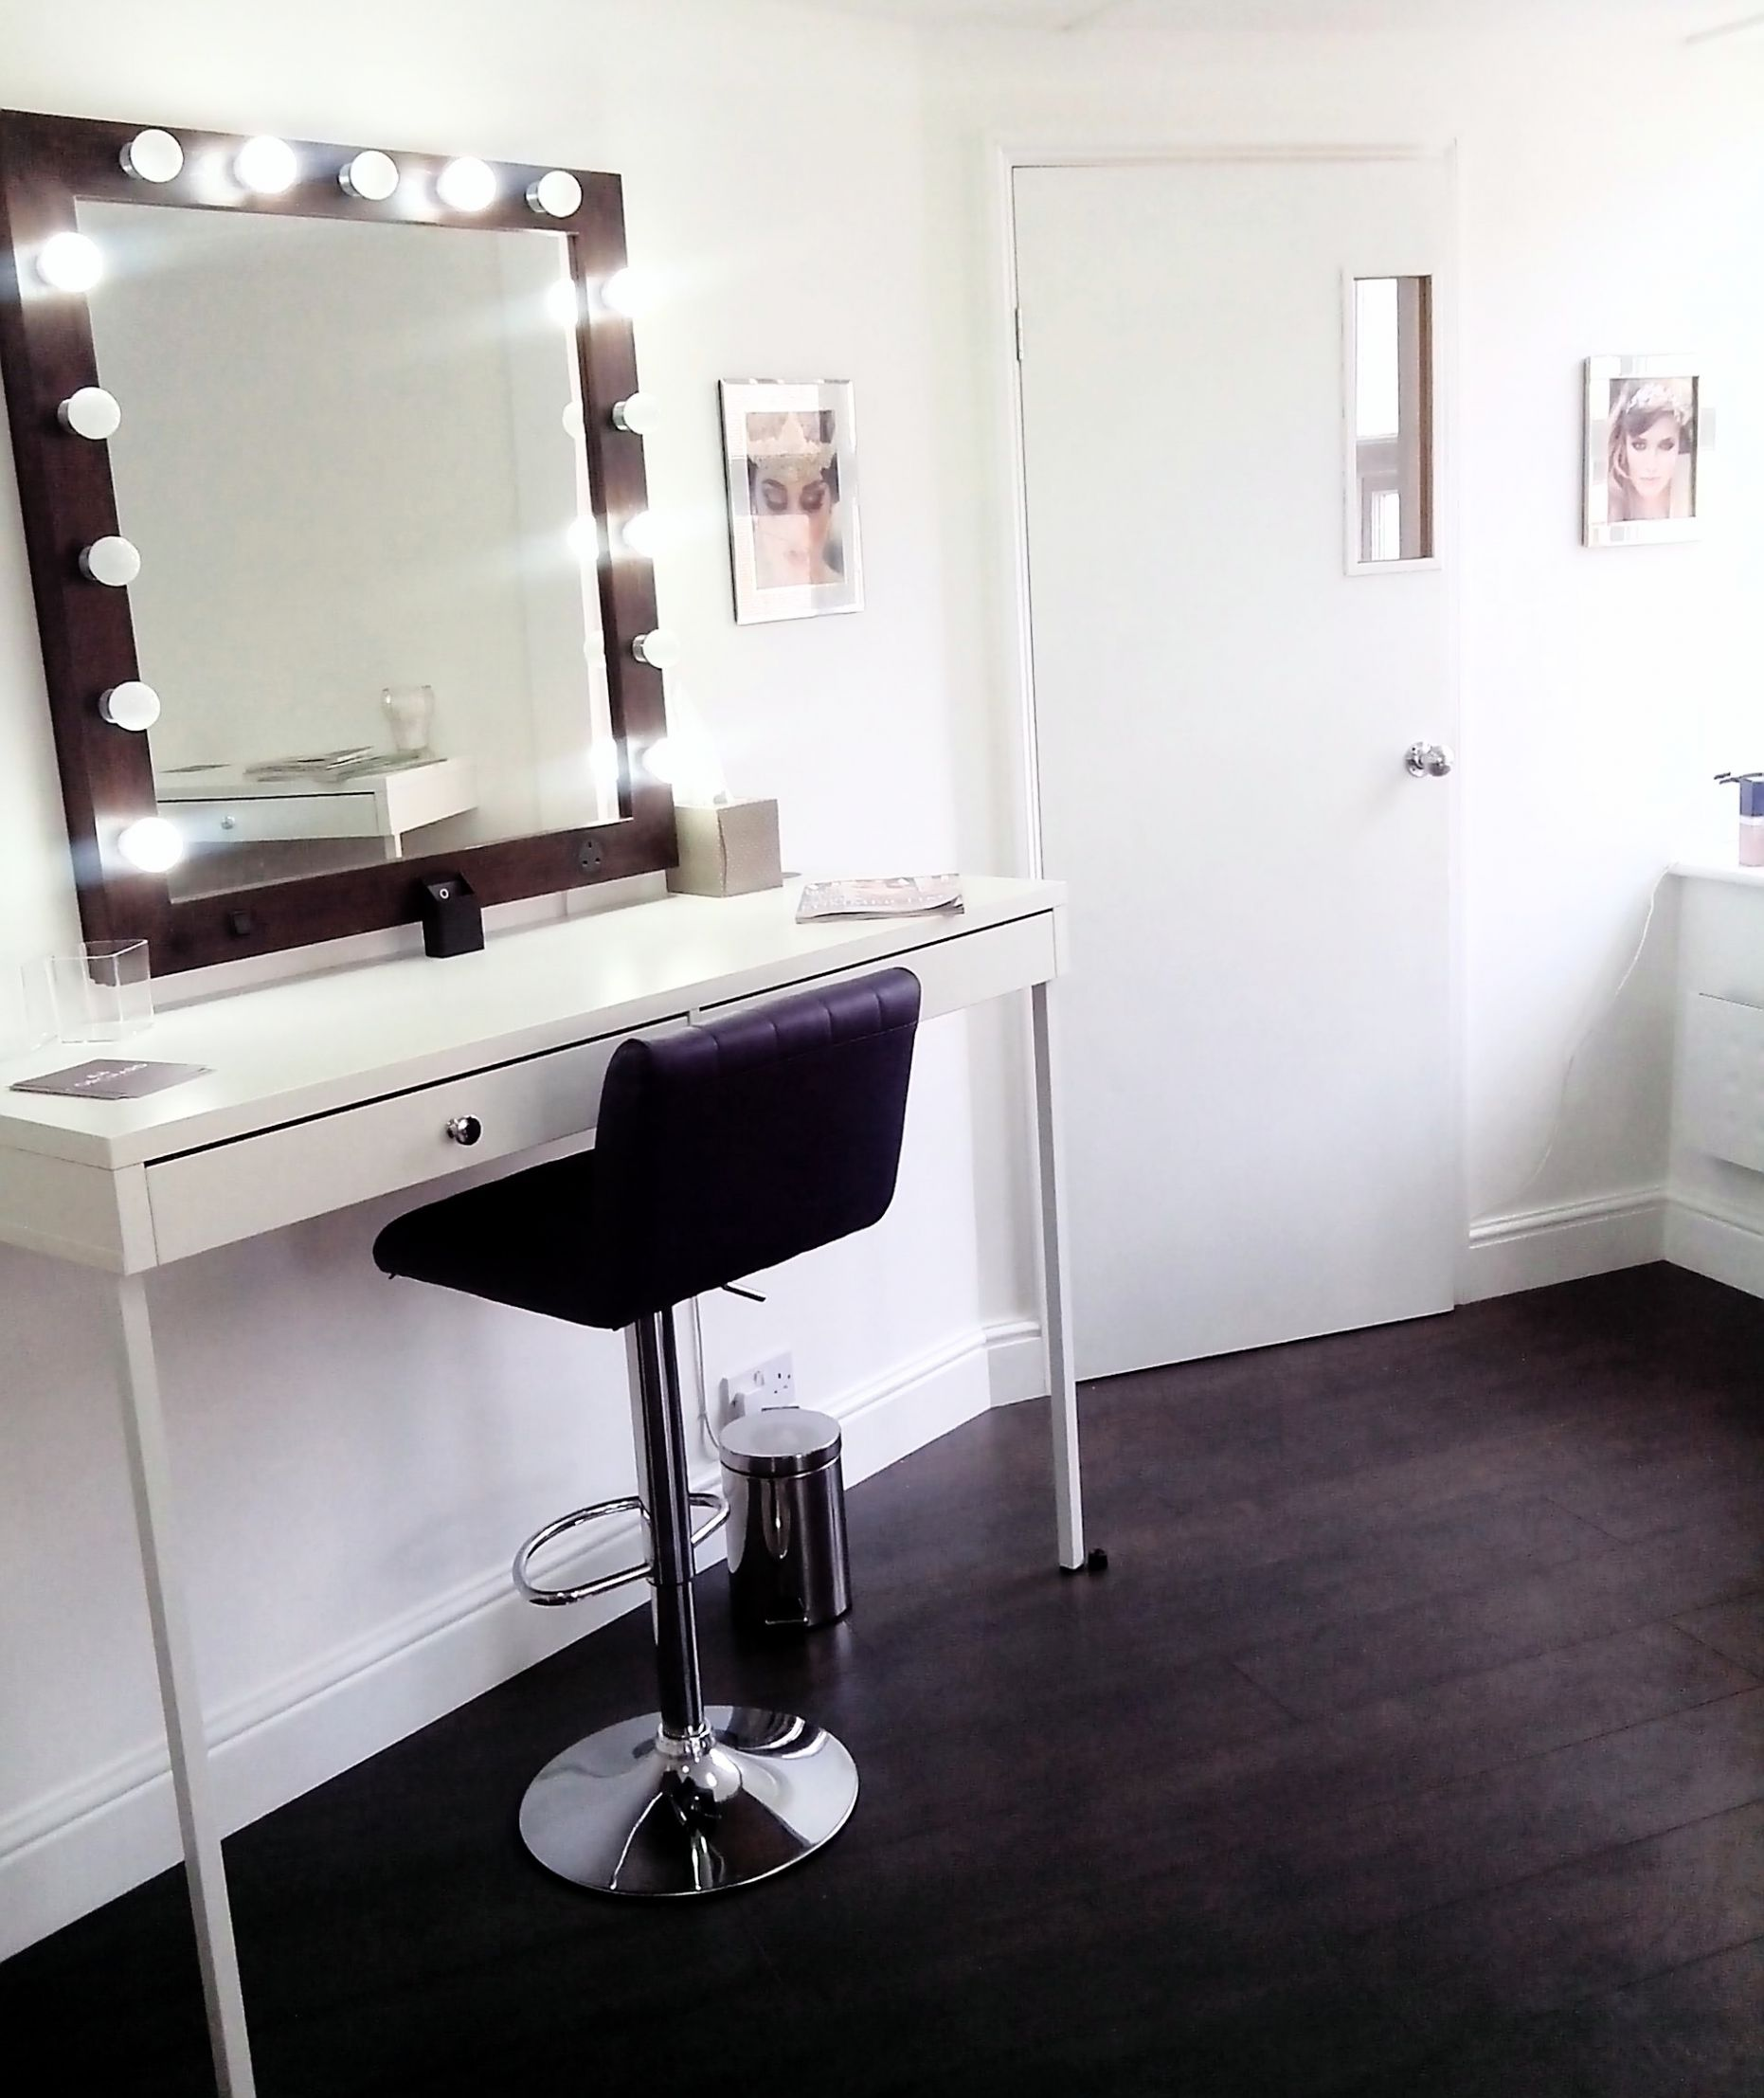 Home Makeup studio Ideas - Orchard Makeup - makeup home room